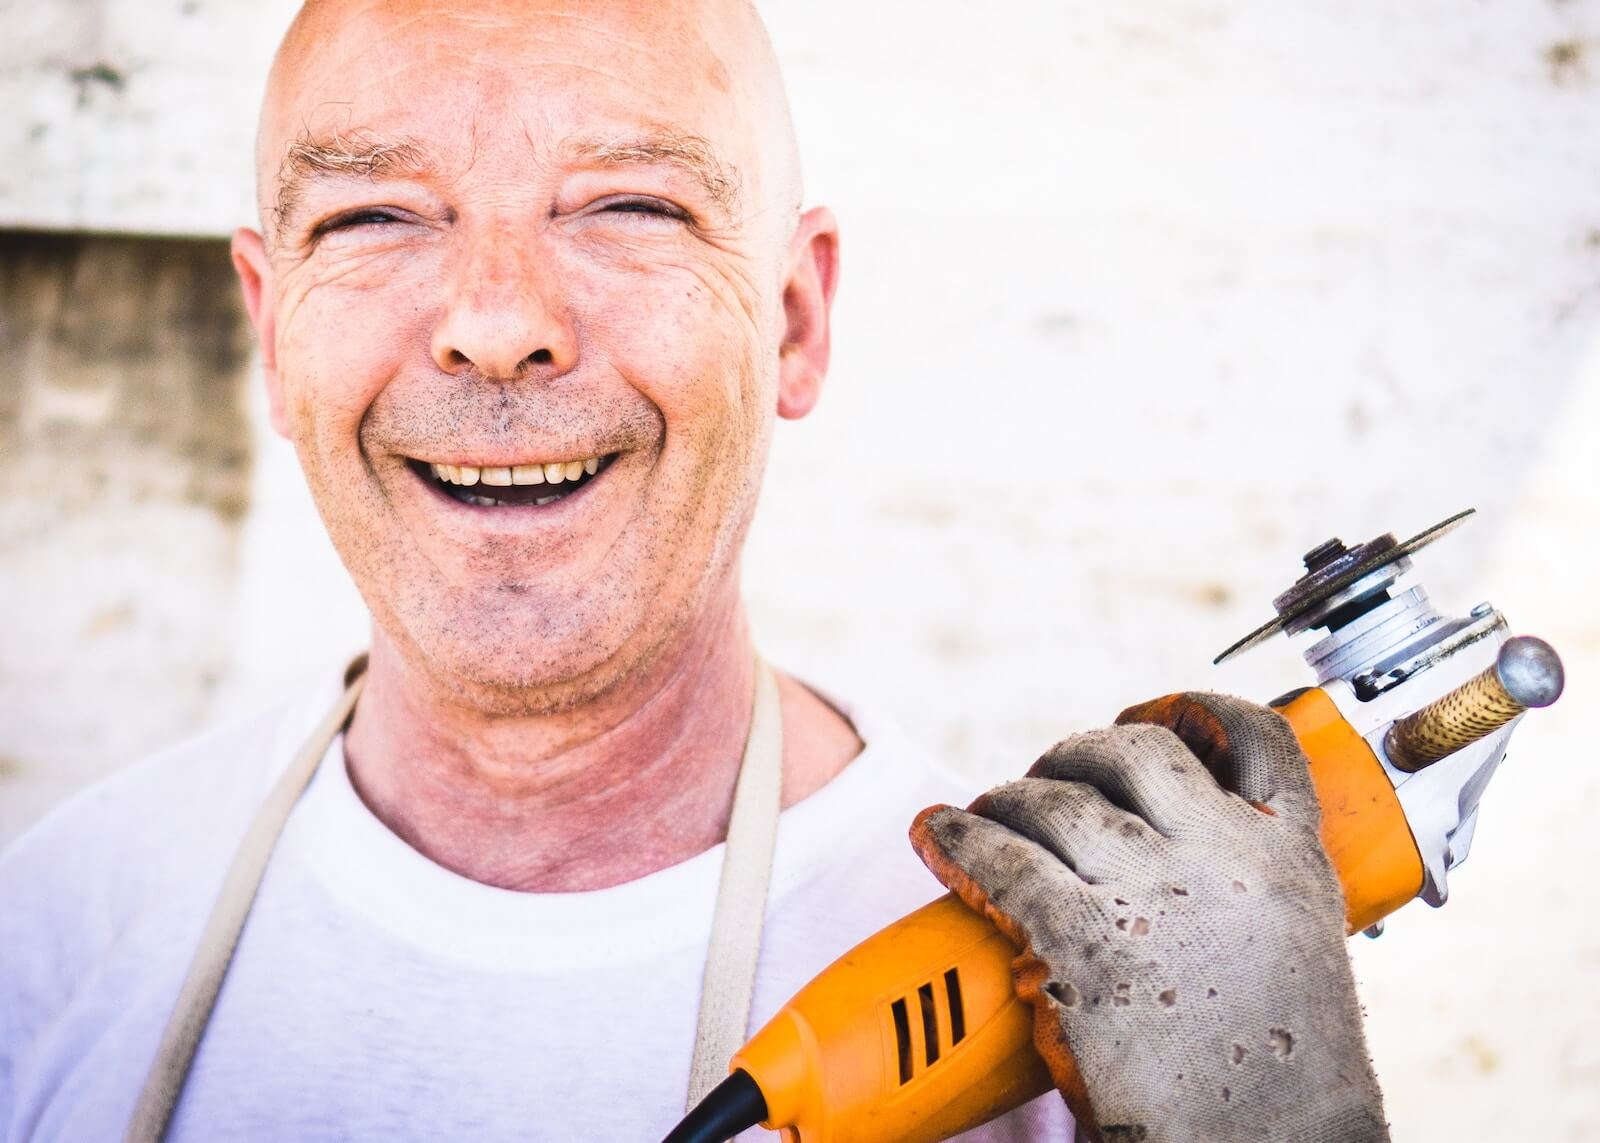 How much does workers' comp cost?